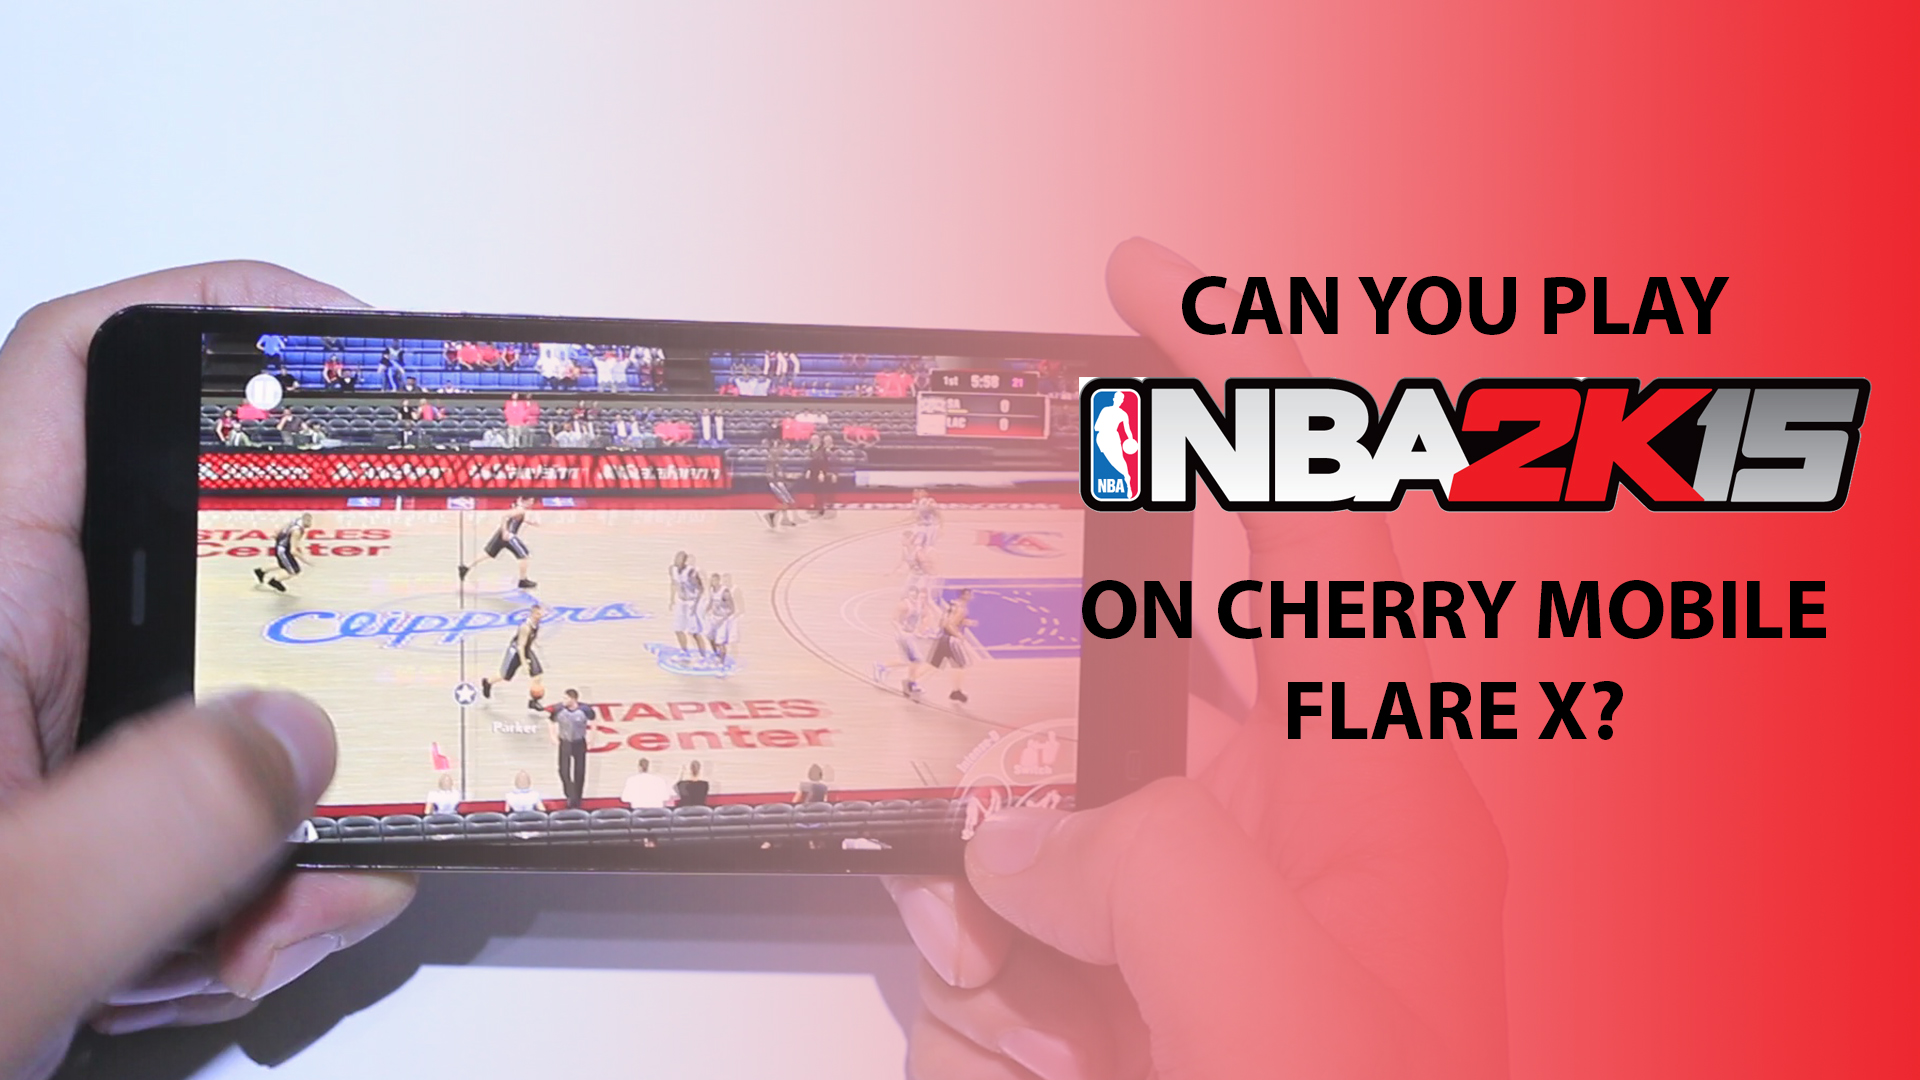 Cherry Mobile Flare X, Can I Play NBA 2K15 on Cherry Mobile Flare X?, Gadget Pilipinas